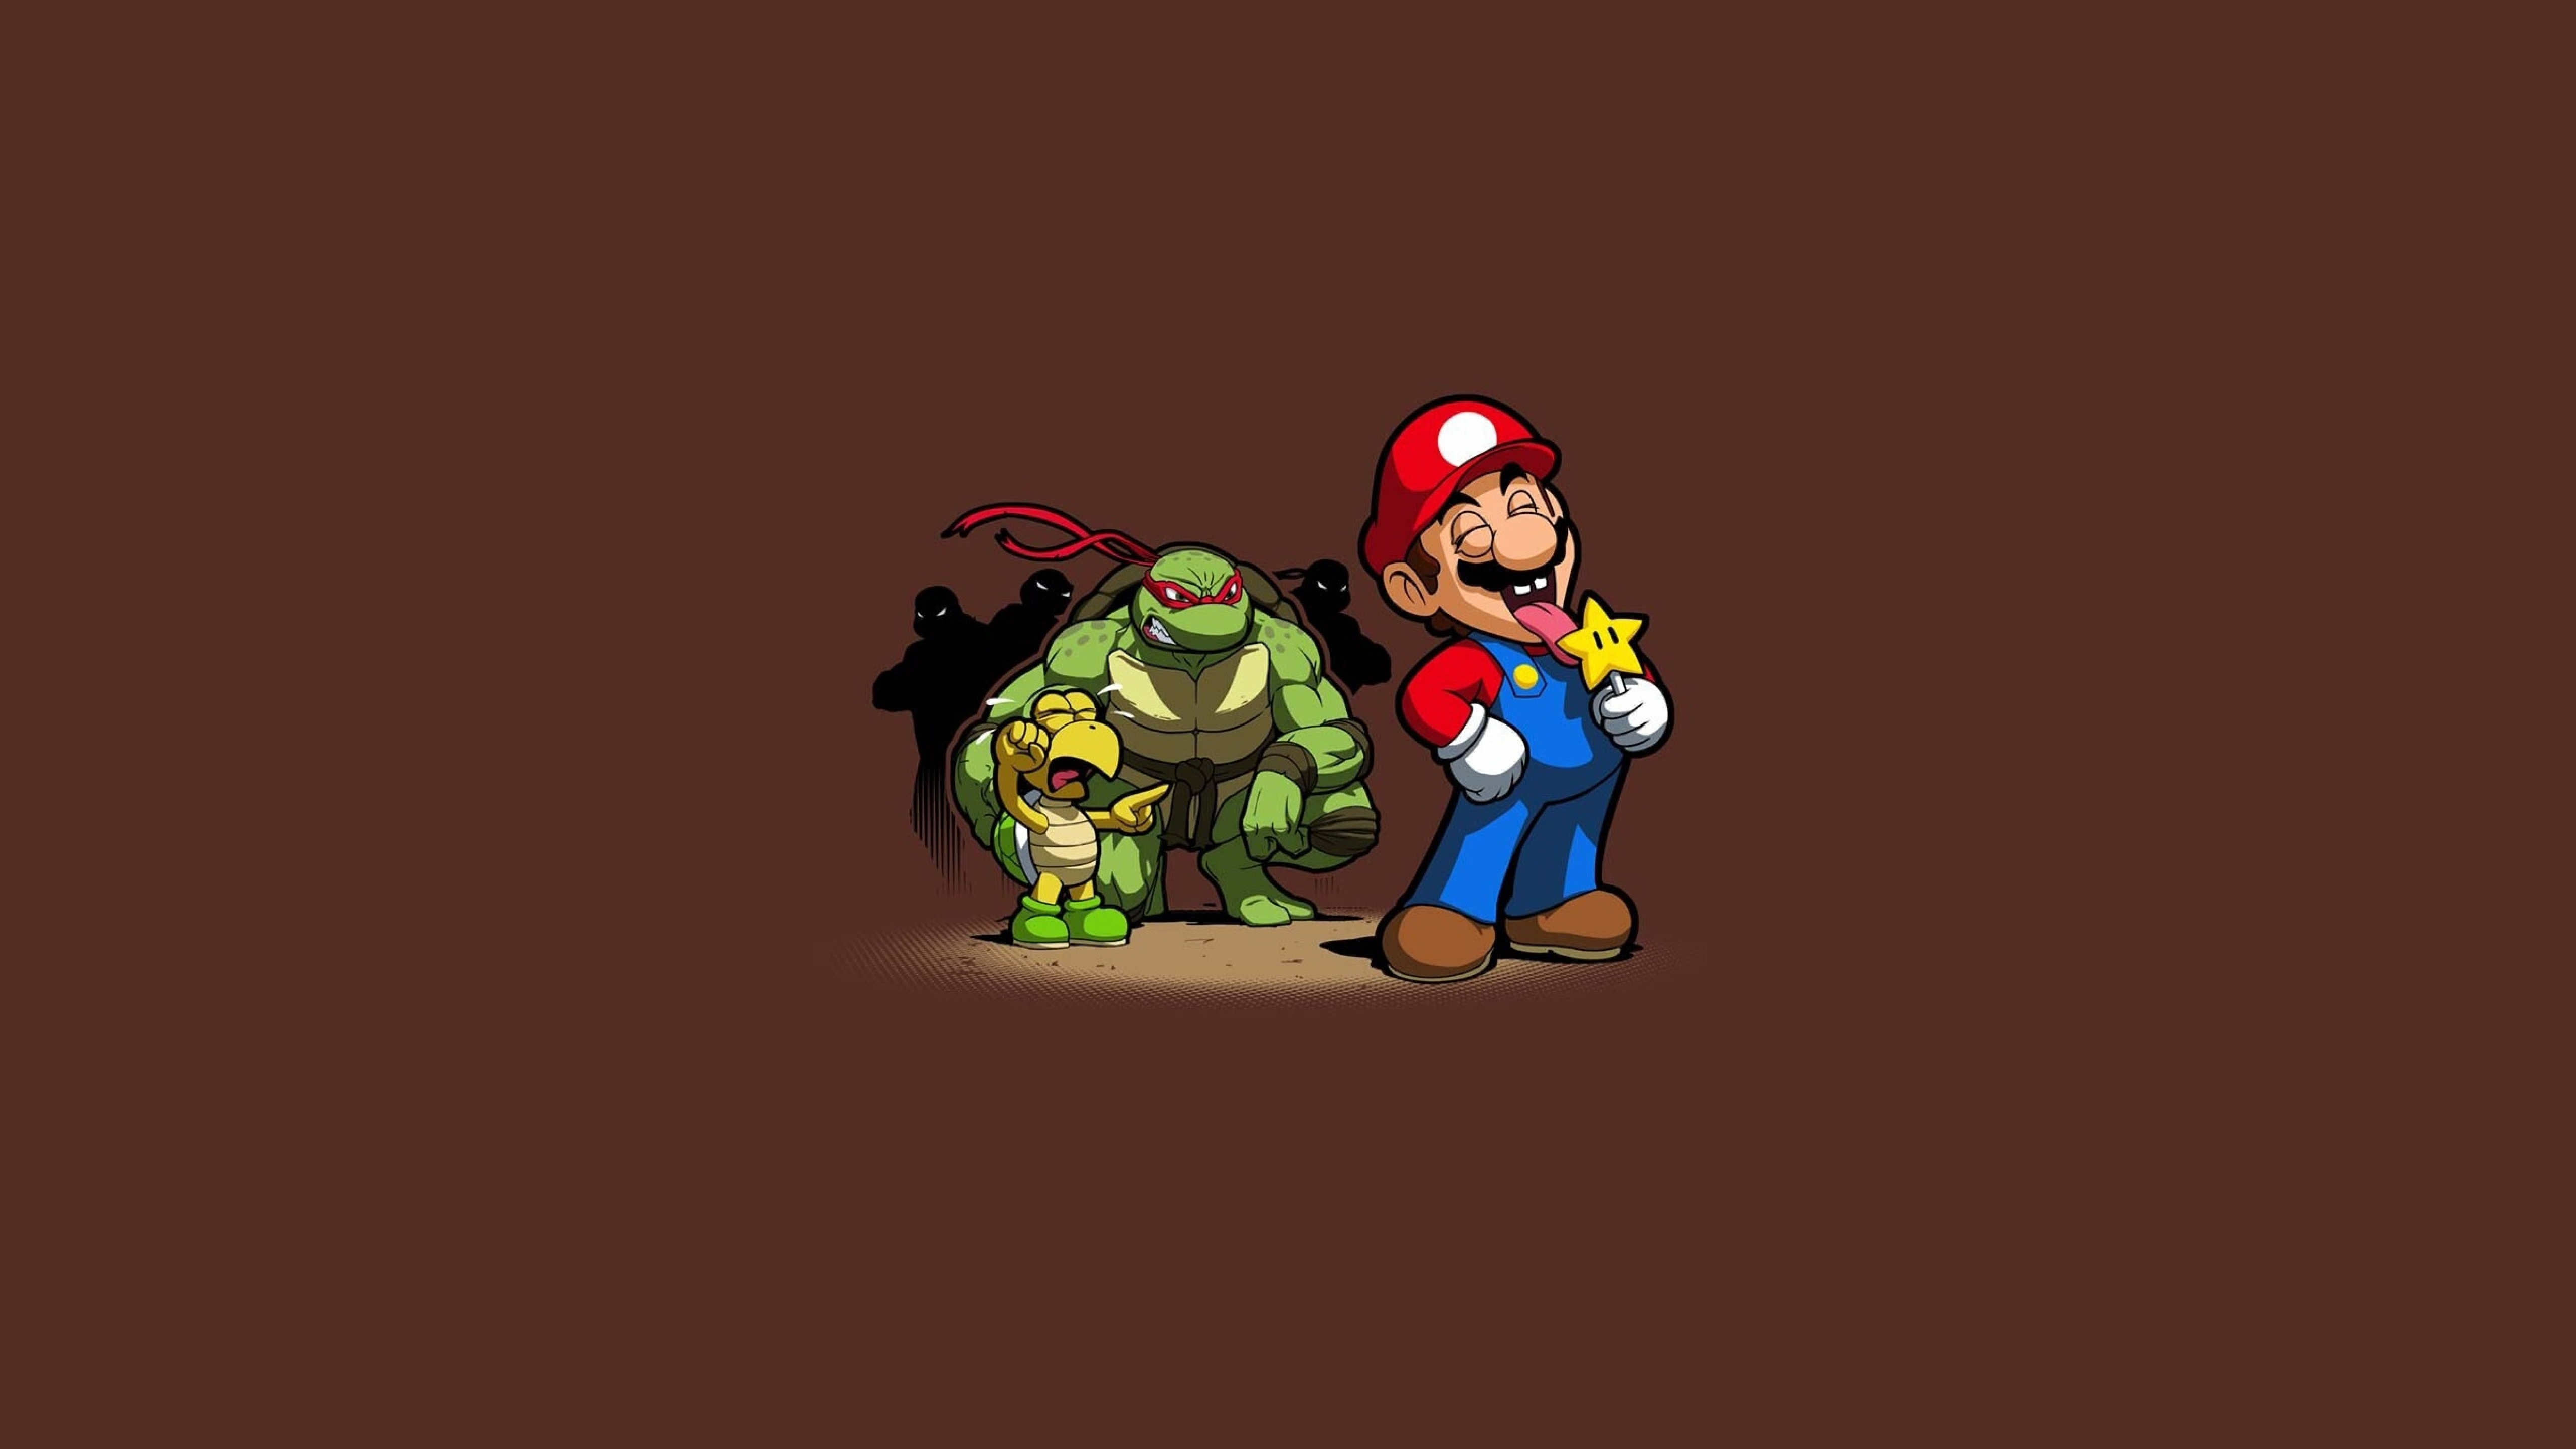 5120x2880 Super Mario And Teenage Mutan Ninja Turtles 5k Wallpaper